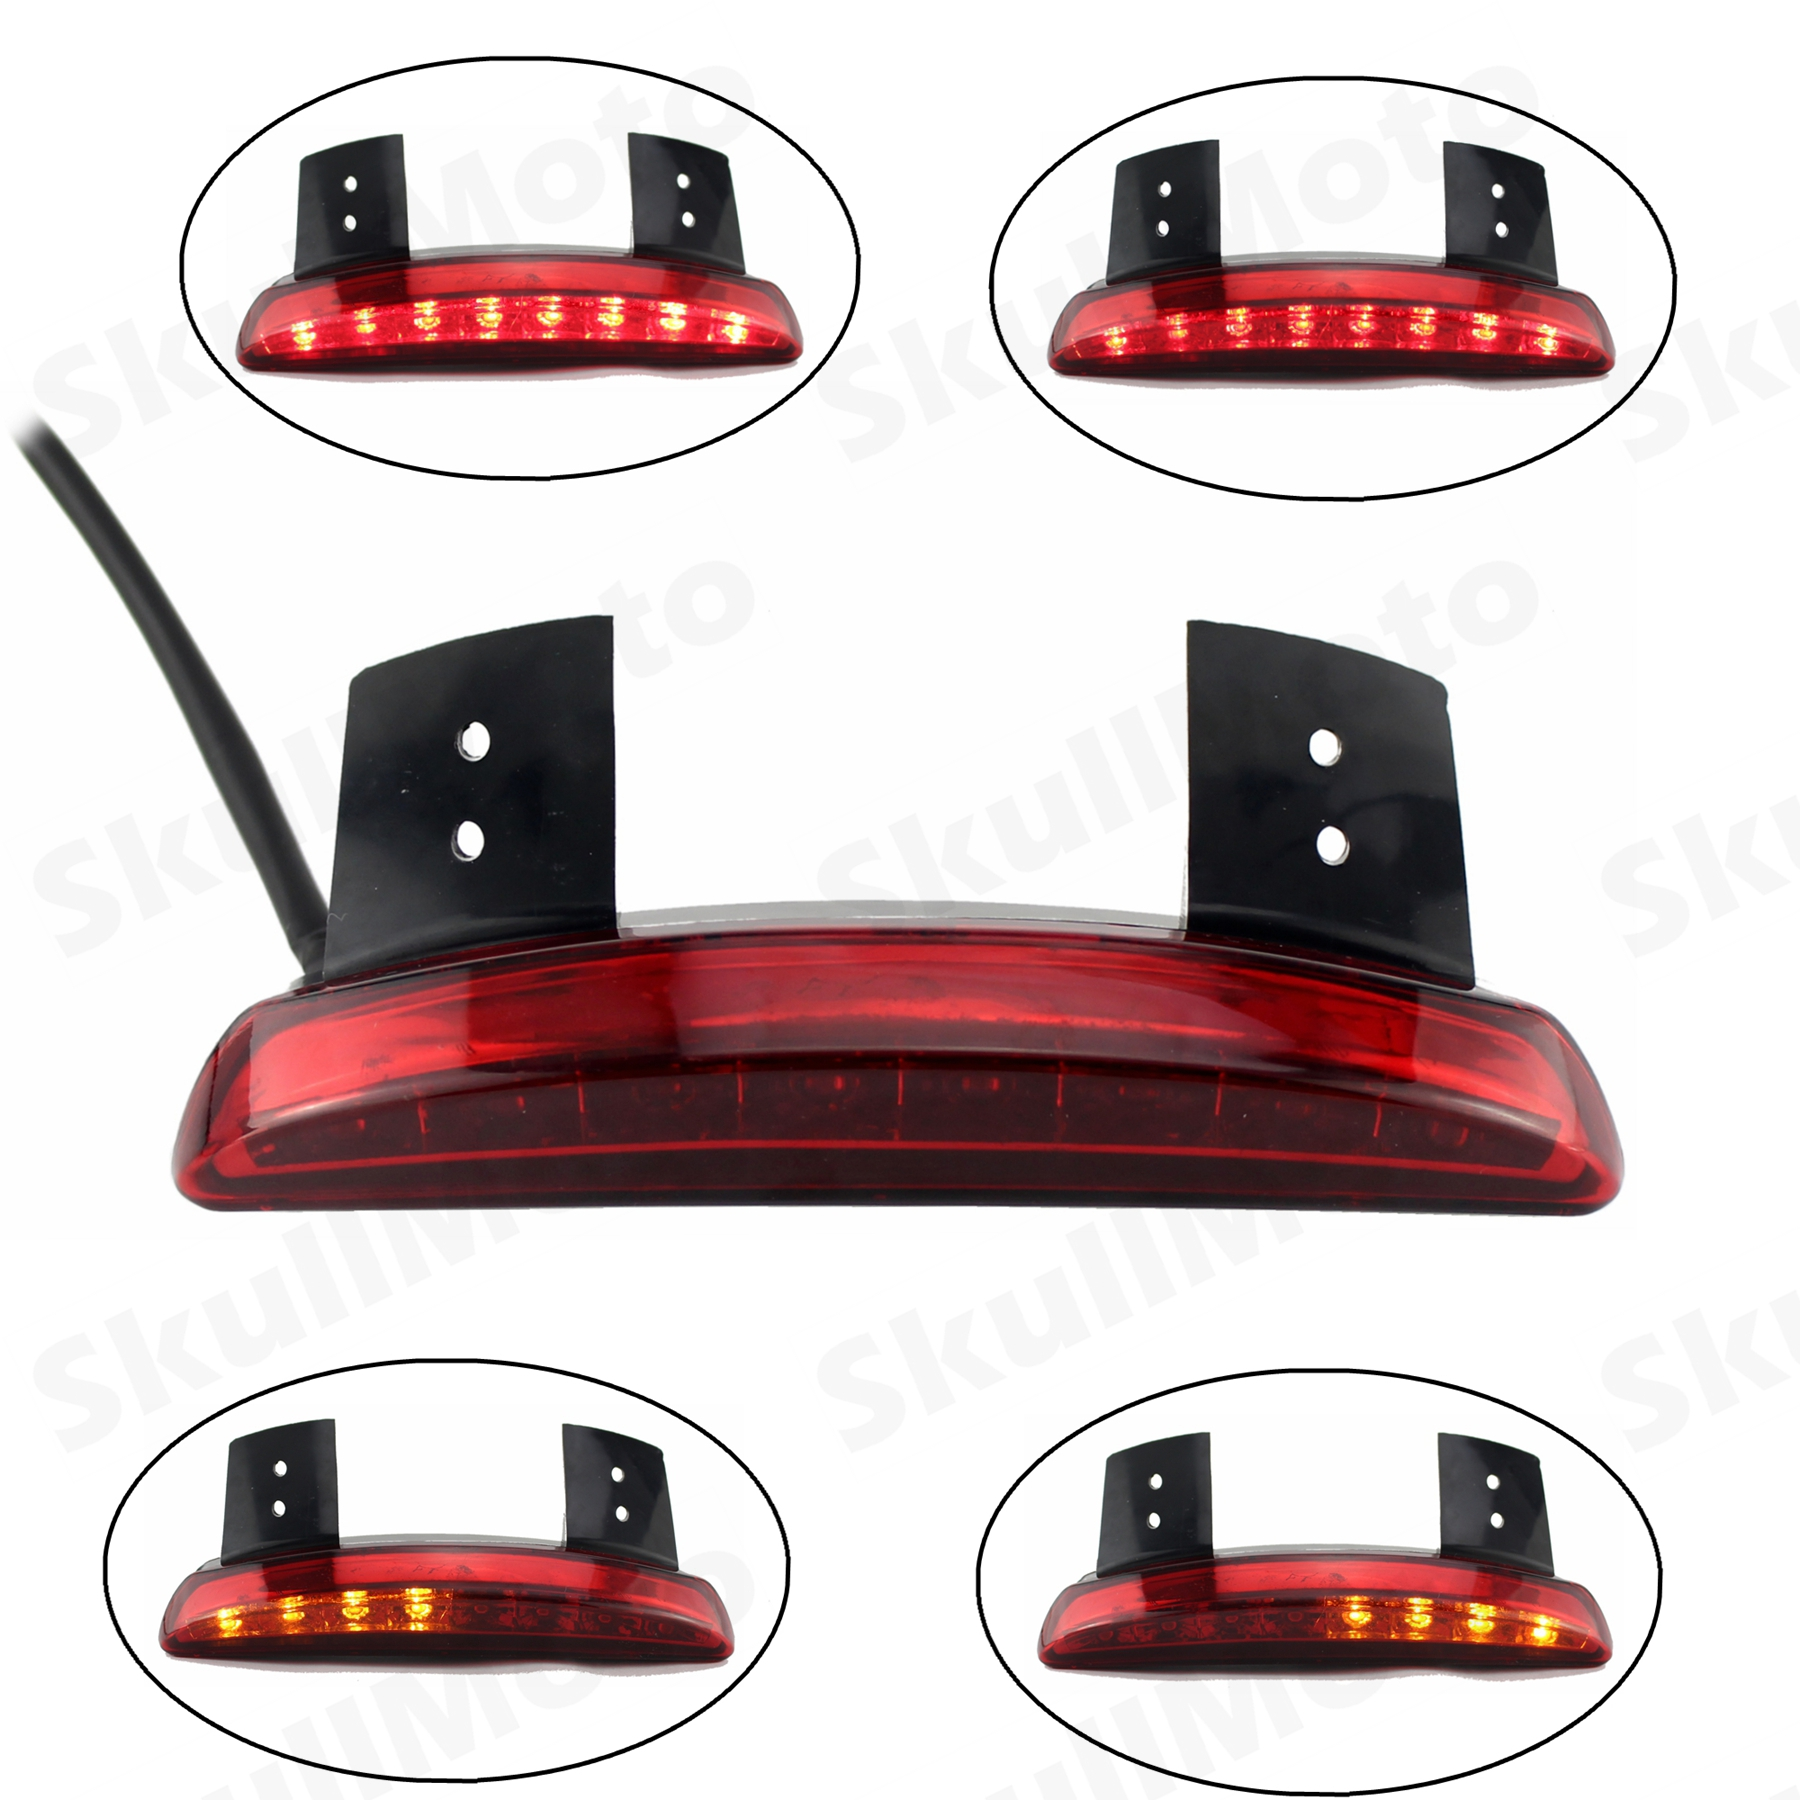 Motorcycle Fender Edge <font><b>LED</b></font> Tail Light Fits for Harley Iron <font><b>883</b></font> XL883N XL1200N Chopped Red Lens image